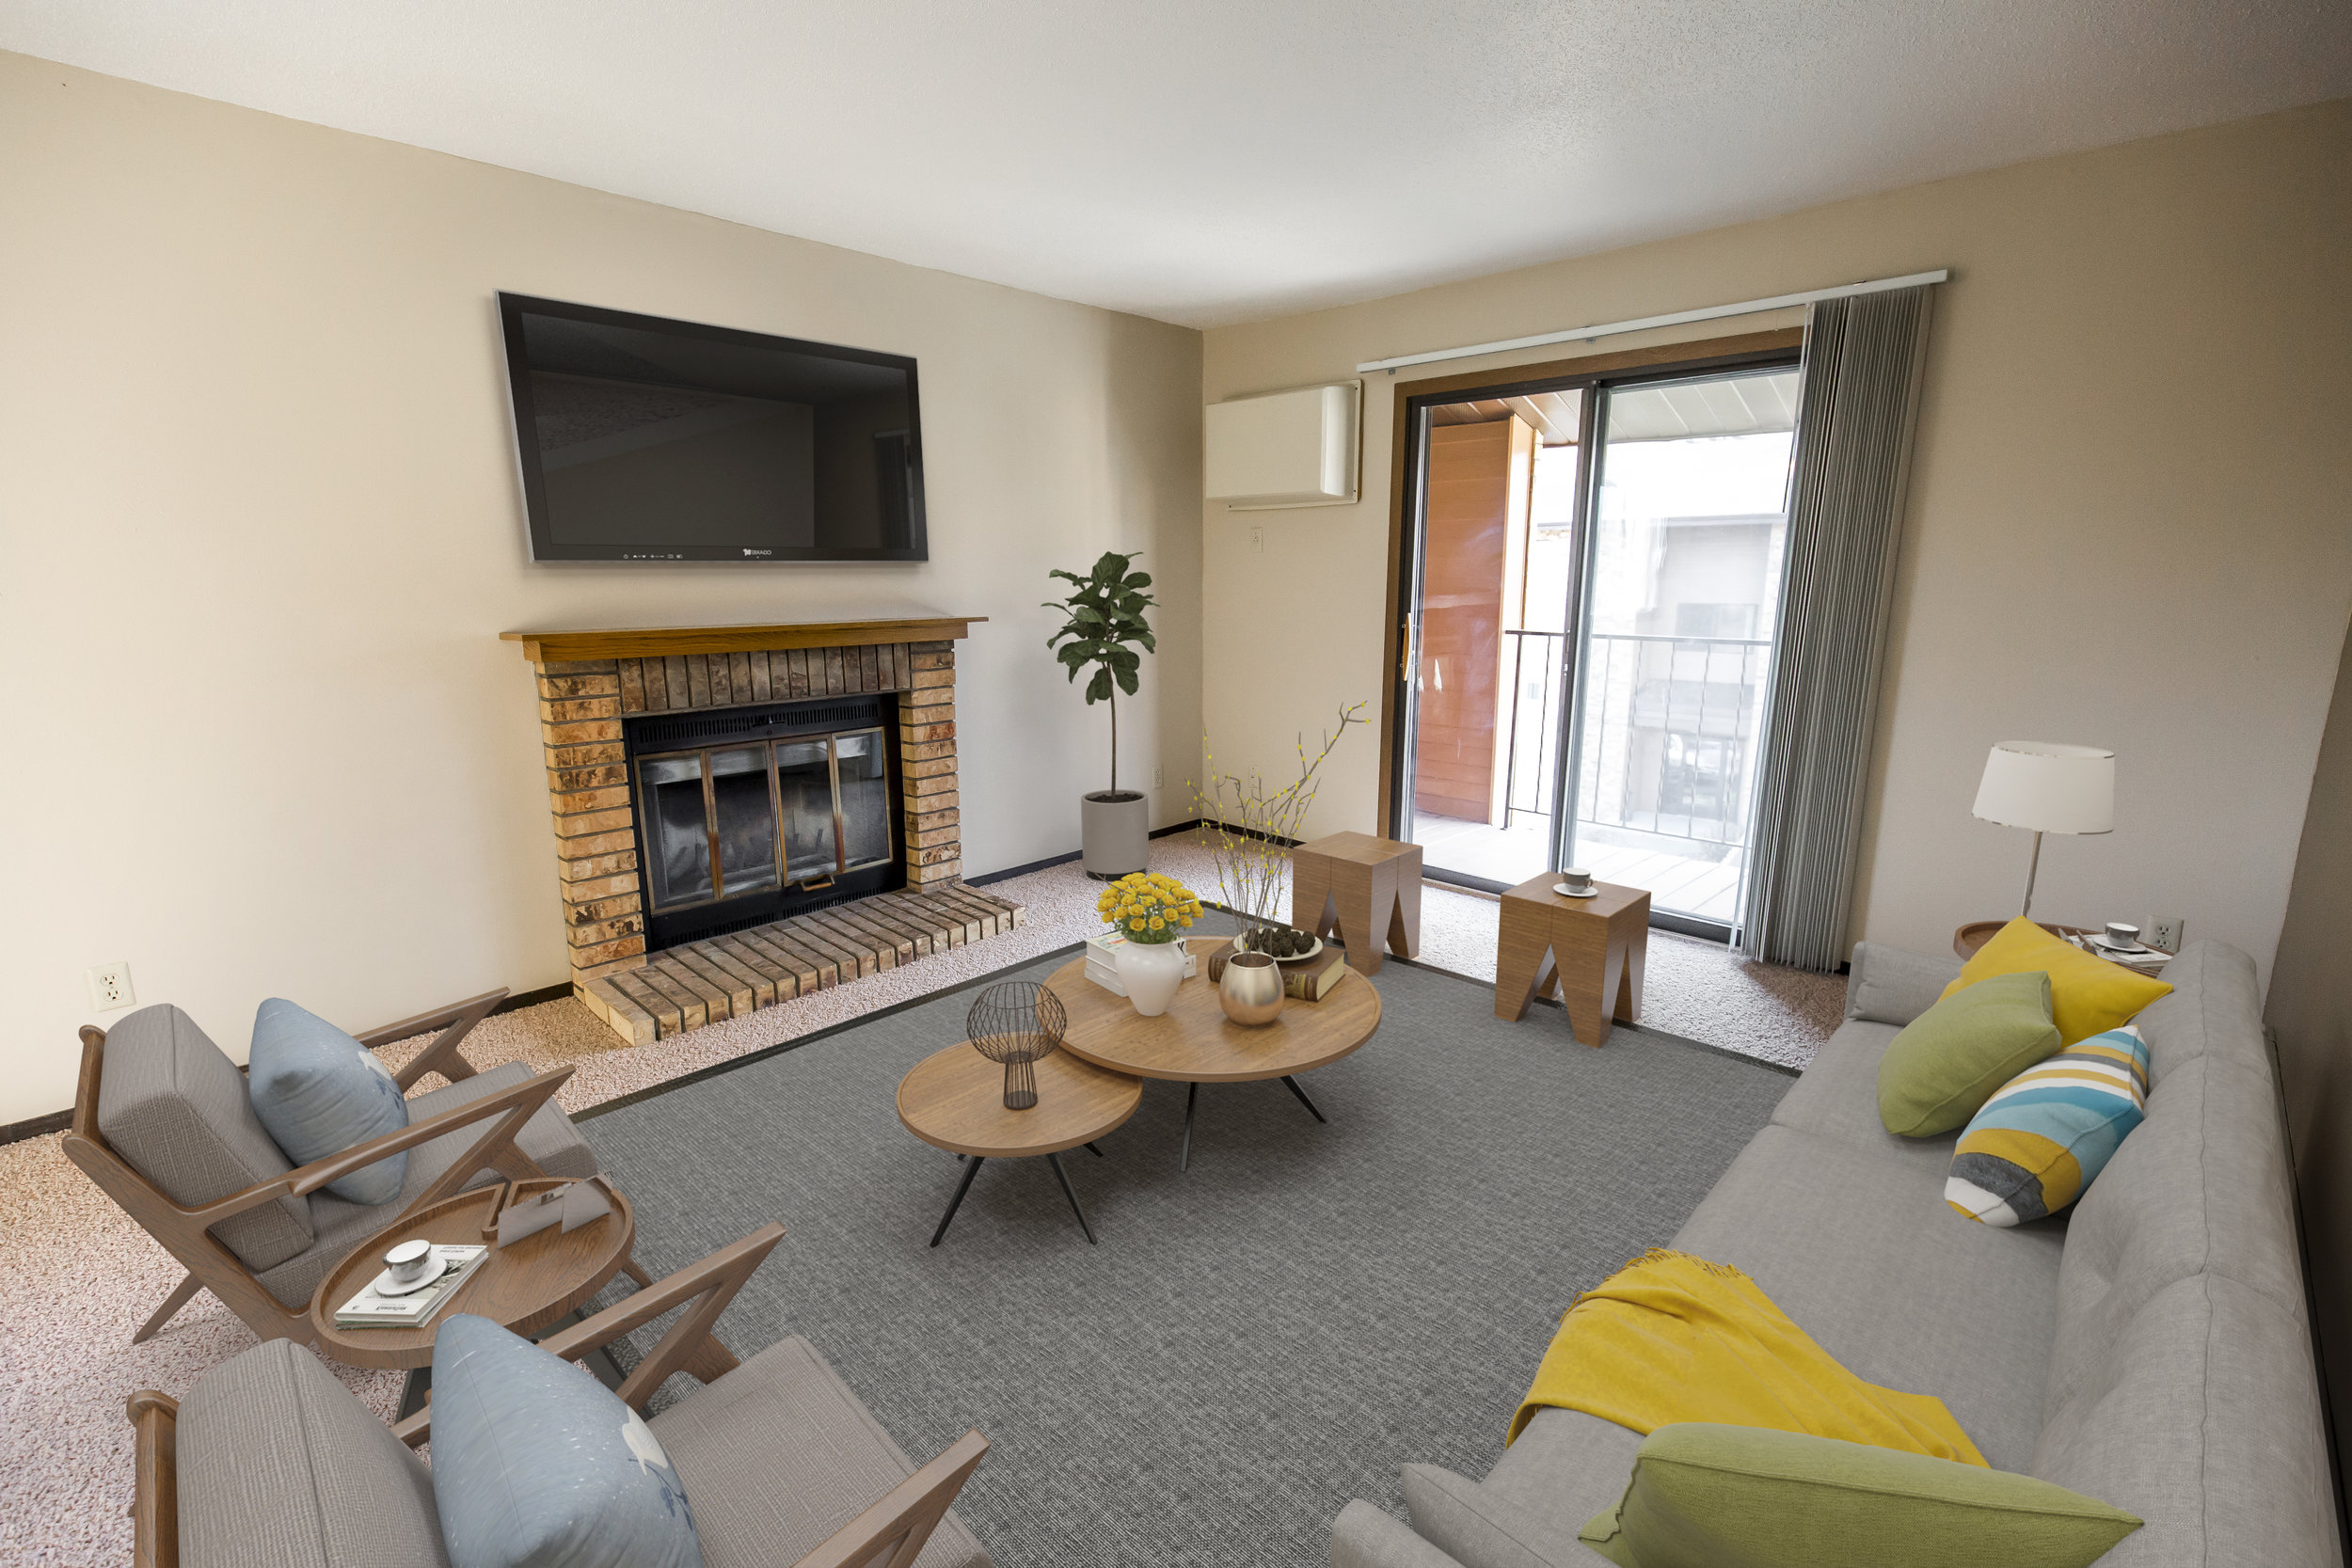 Fireplace are In Select Units that Offer Access to the Balcony or Patio